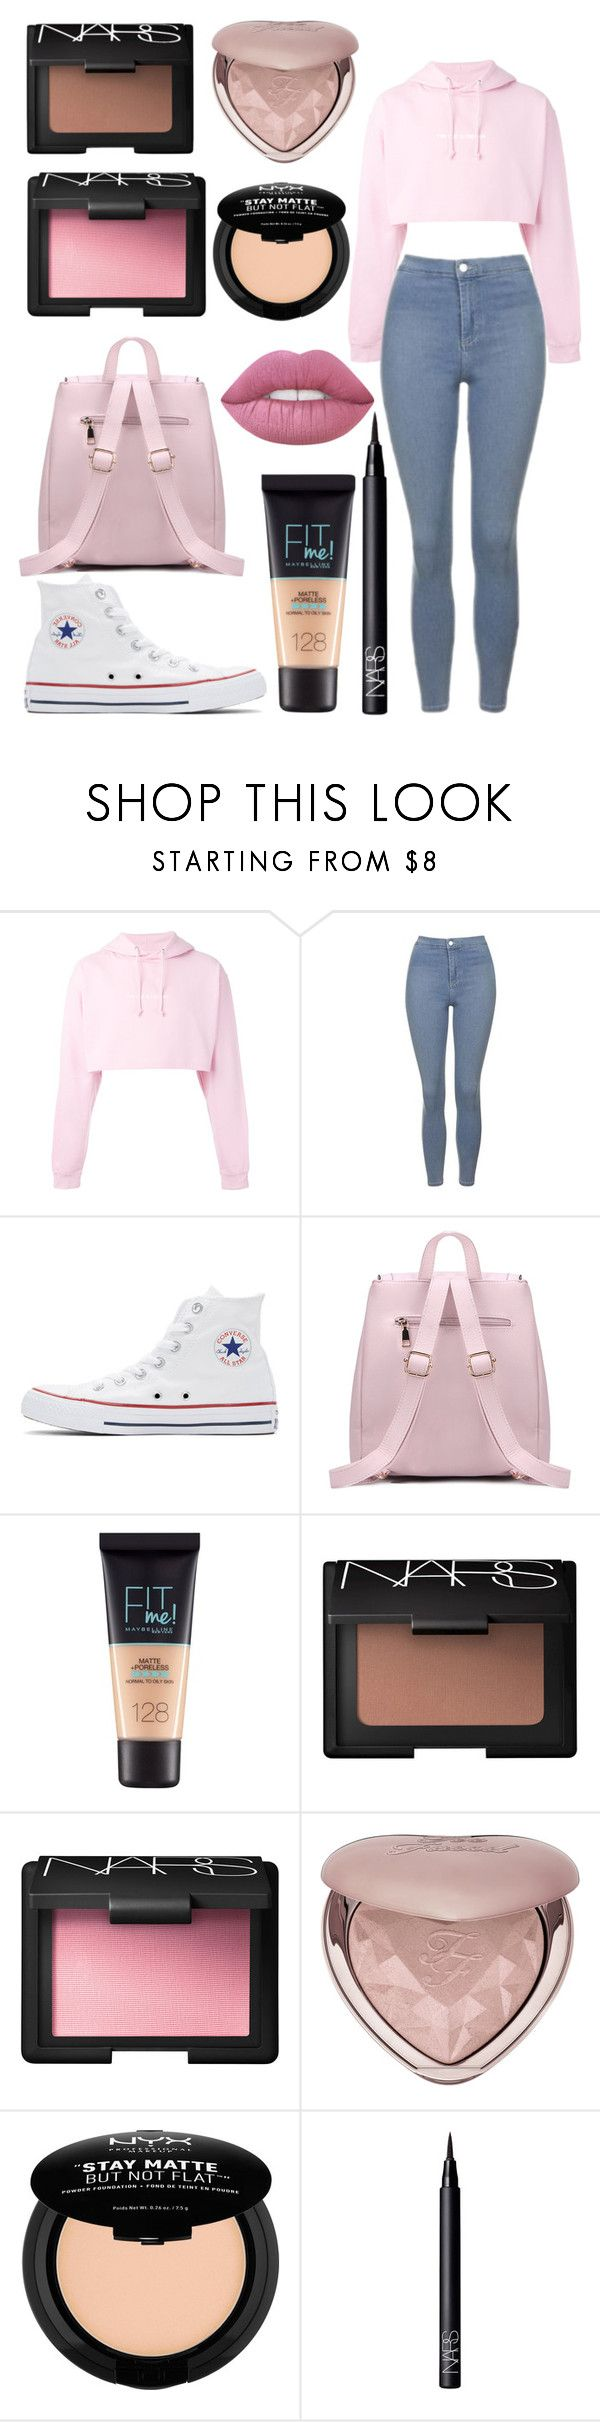 """""""Comfy simple"""" by sarahb-17 ❤ liked on Polyvore featuring F.A.M.T., Topshop, Converse, Maybelline, NARS Cosmetics, Too Faced Cosmetics, NYX and Lime Crime"""